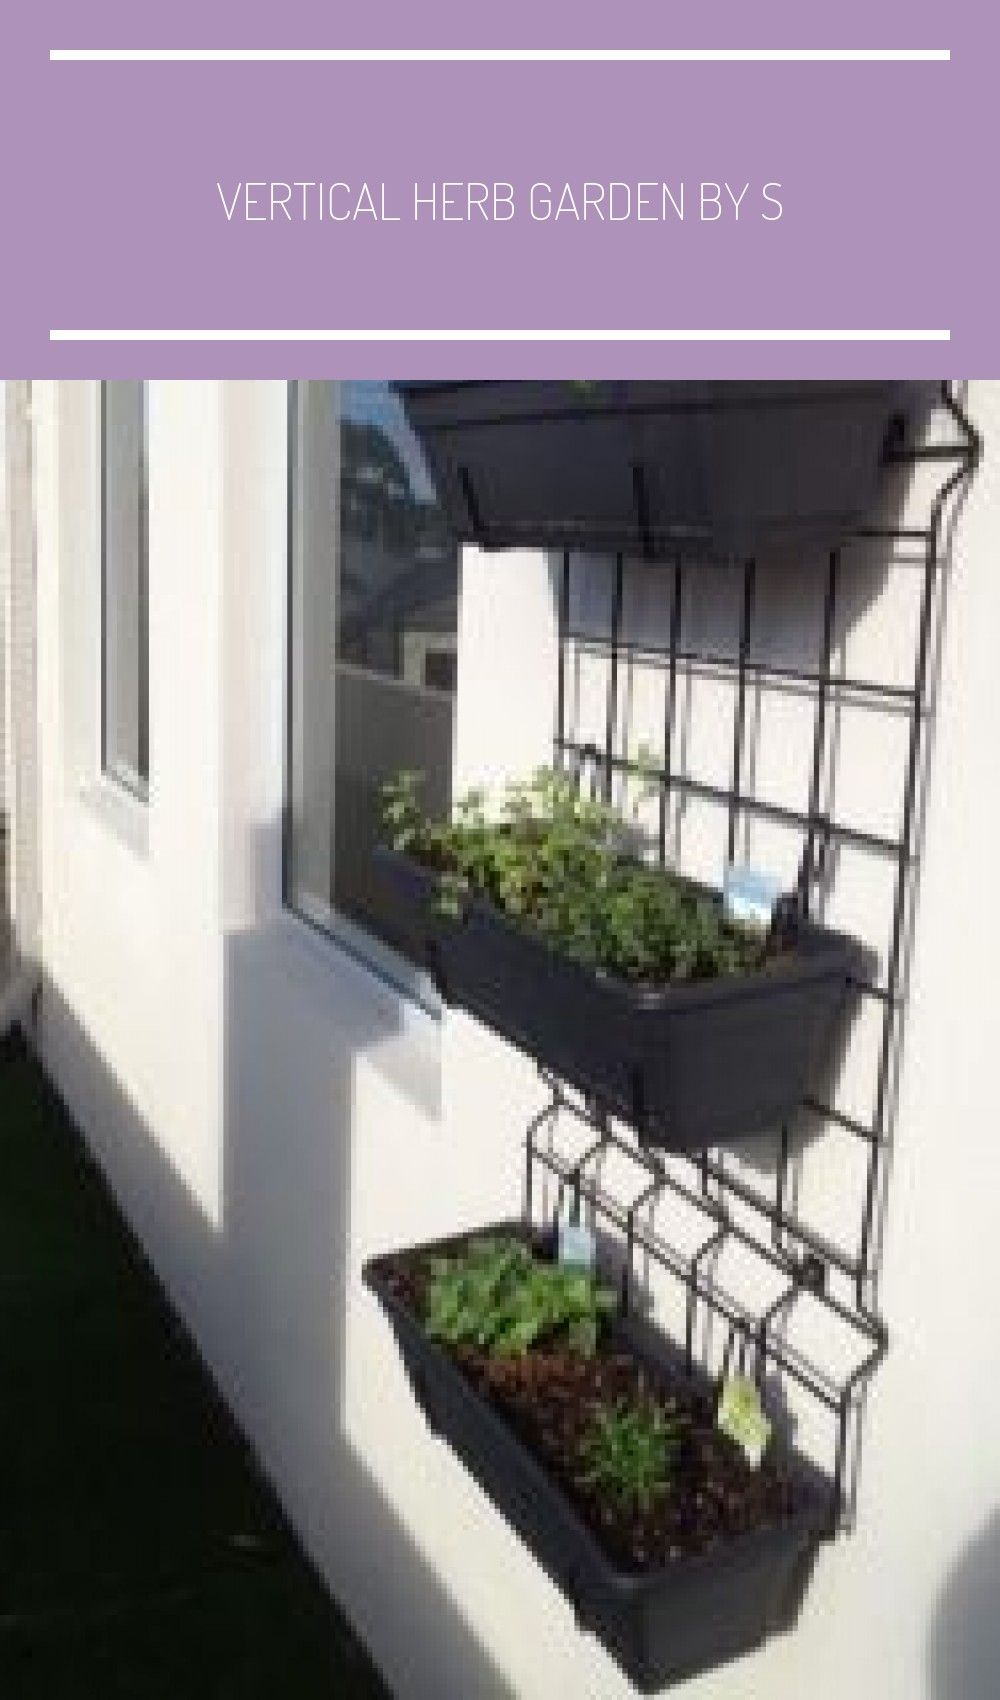 Vertical herb garden by S Vertical herb garden, Herb